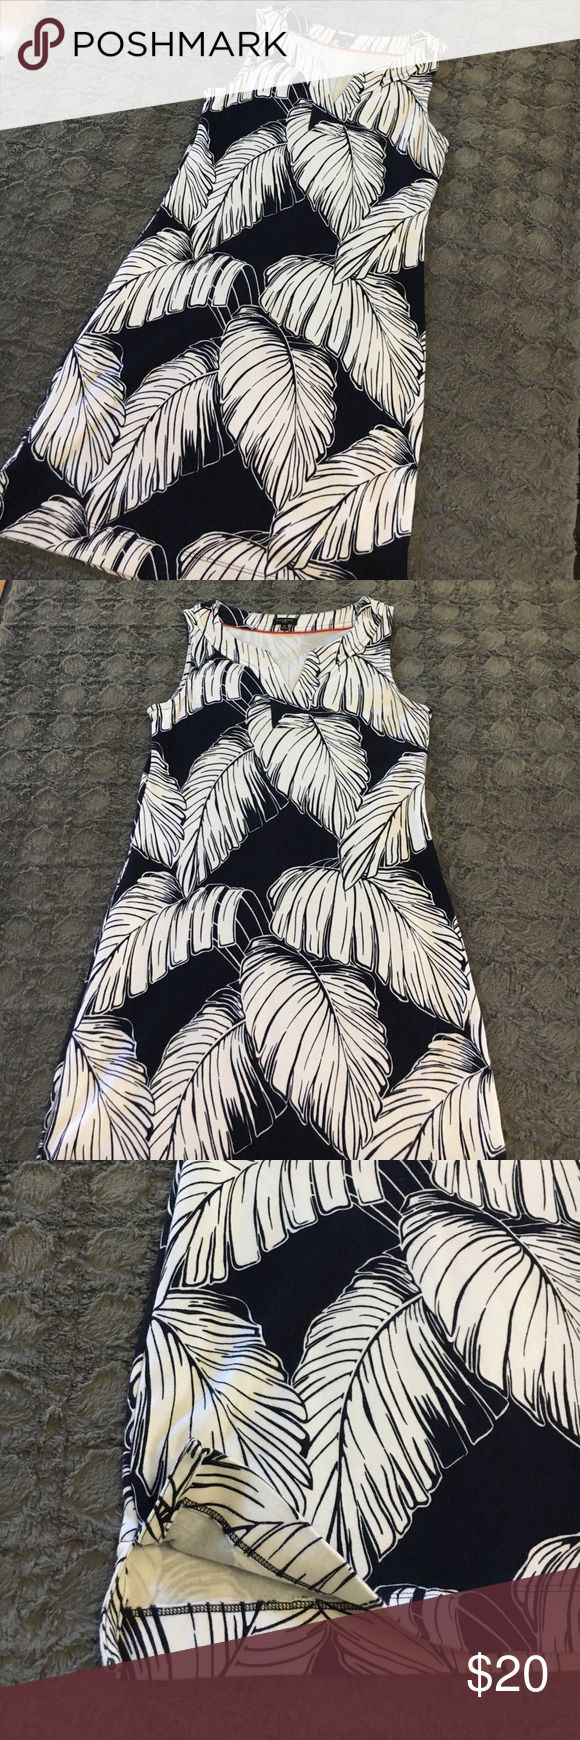 Talbots palm print dress Simple and perfect dress from Talbots. Worn one time during summer vacation last year.  Navy blue and white with v-neck. Perfectly simple and easy to wear. Small slits on each side. Size is Small Petite▫️100% cotton▫️Machine wash cold inside out Talbots Dresses